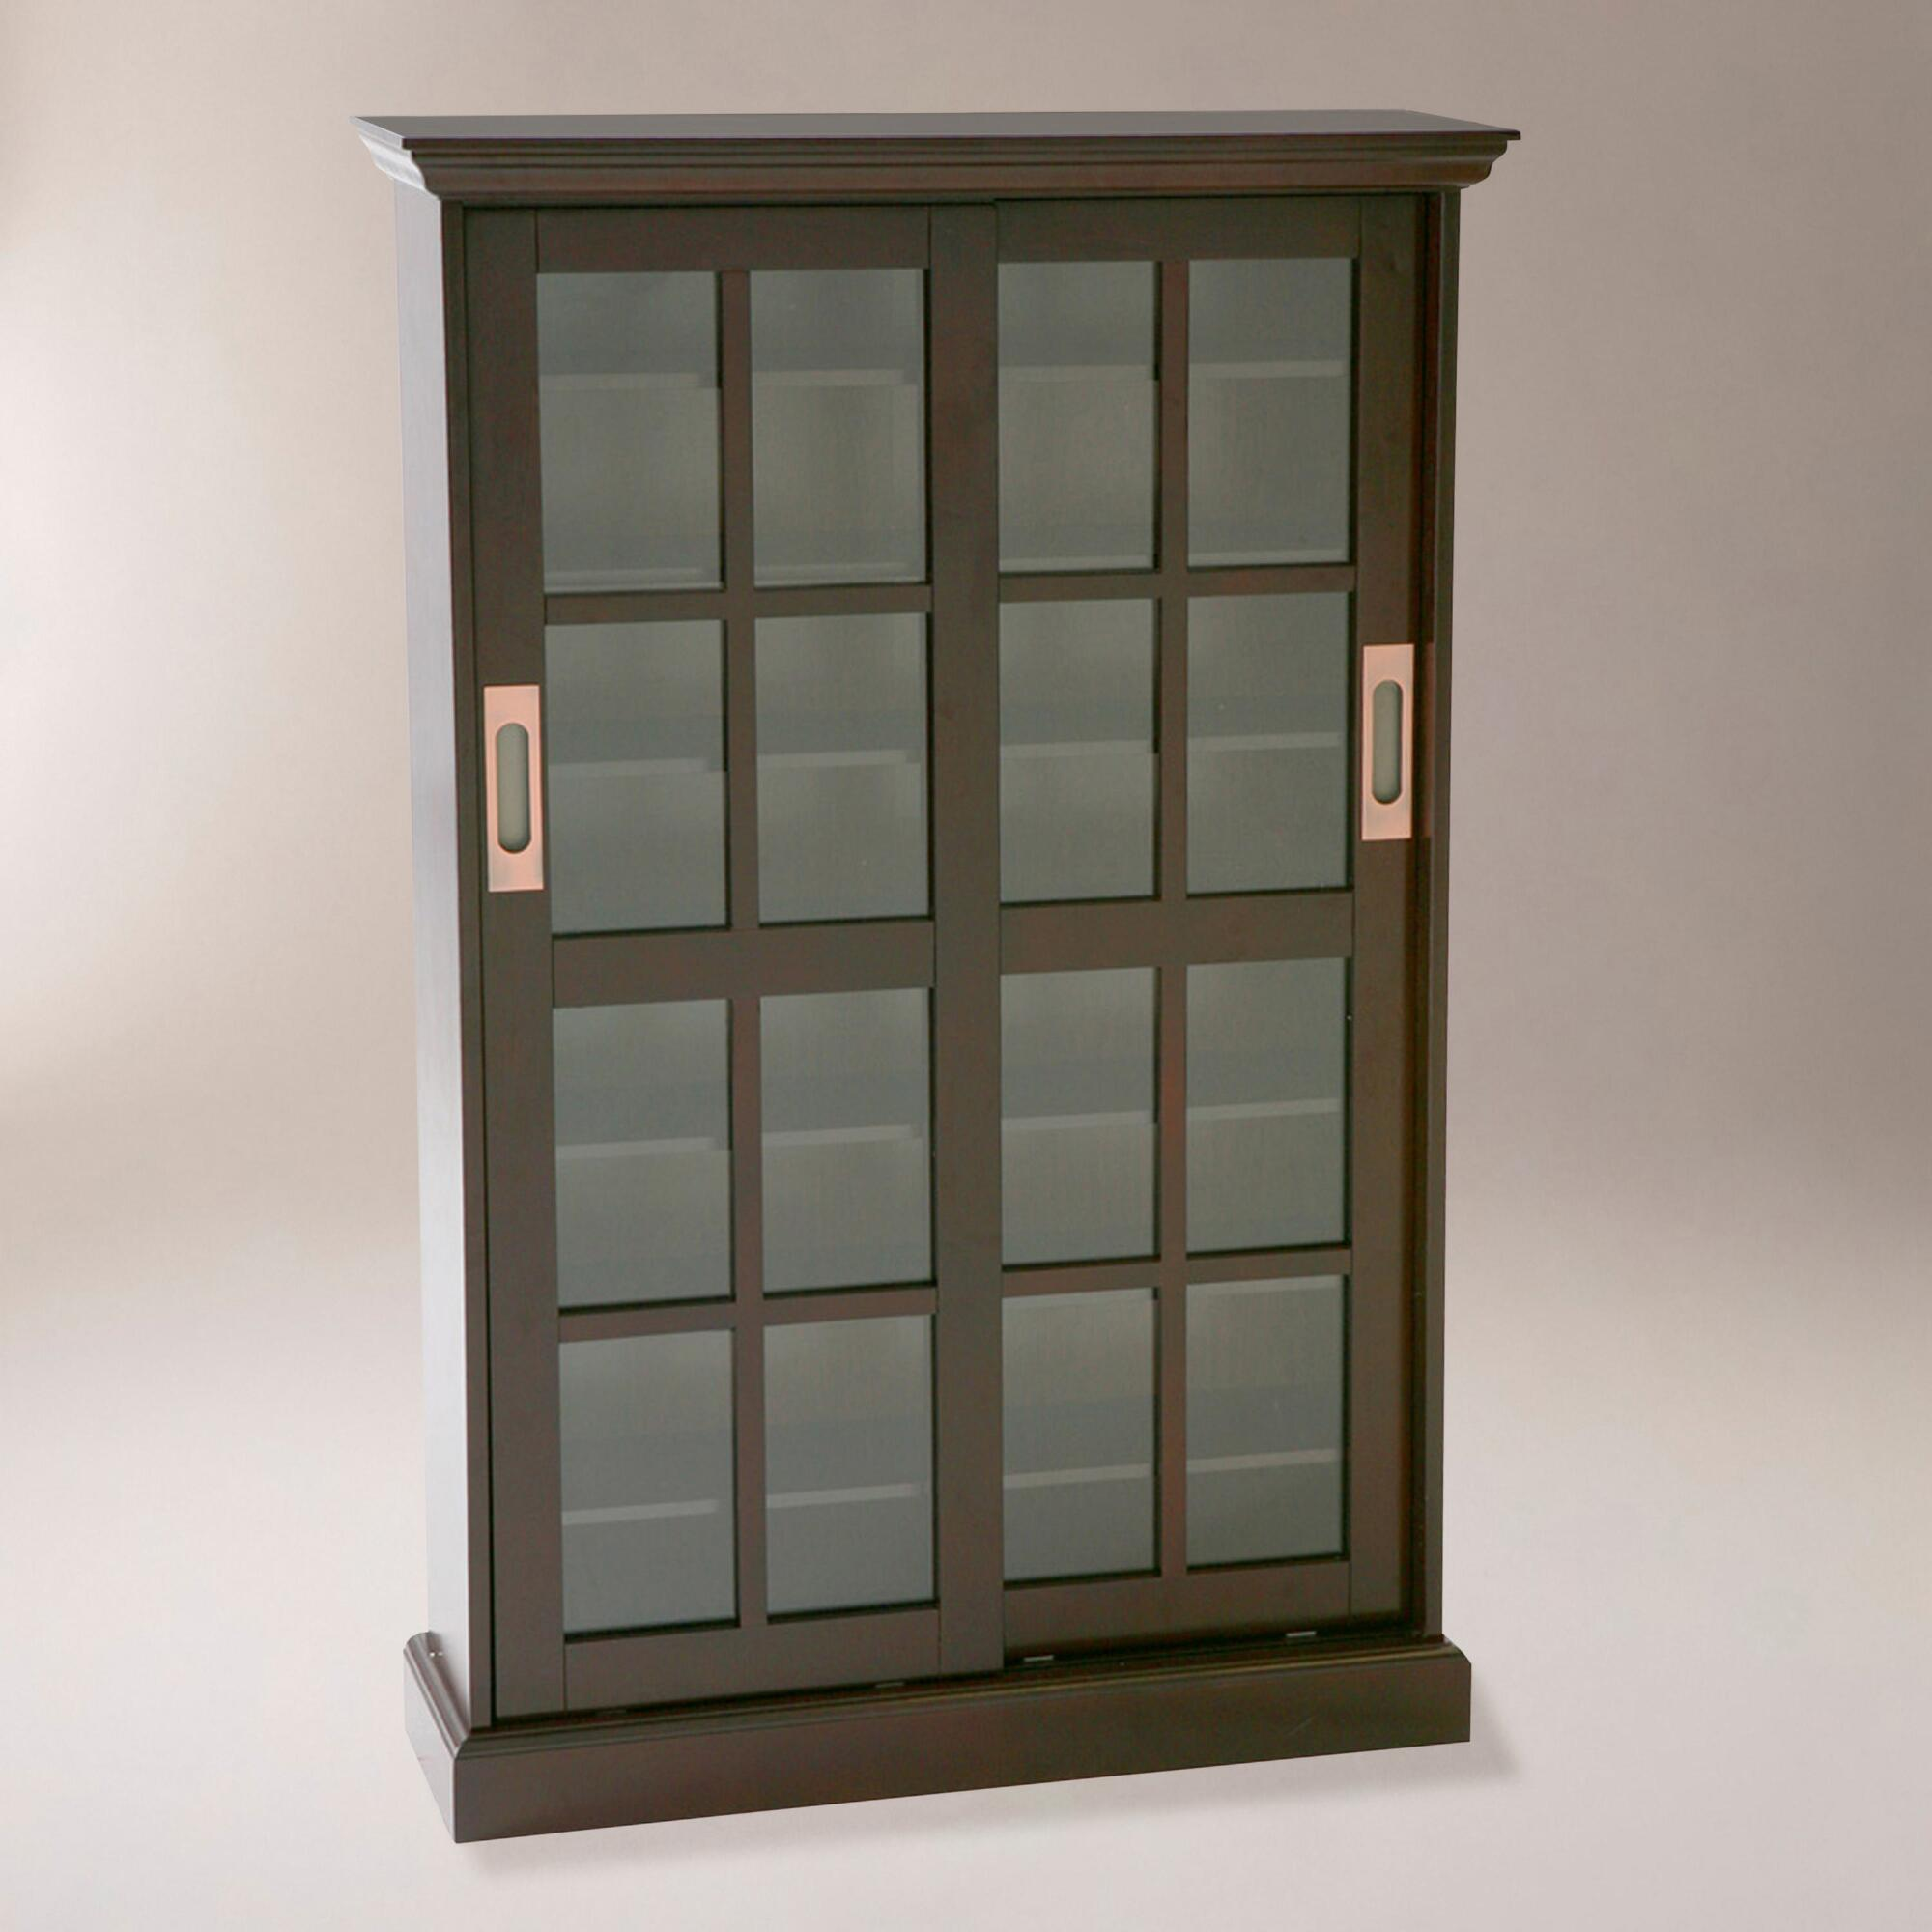 Sliding Doors Cabinet photo - 1